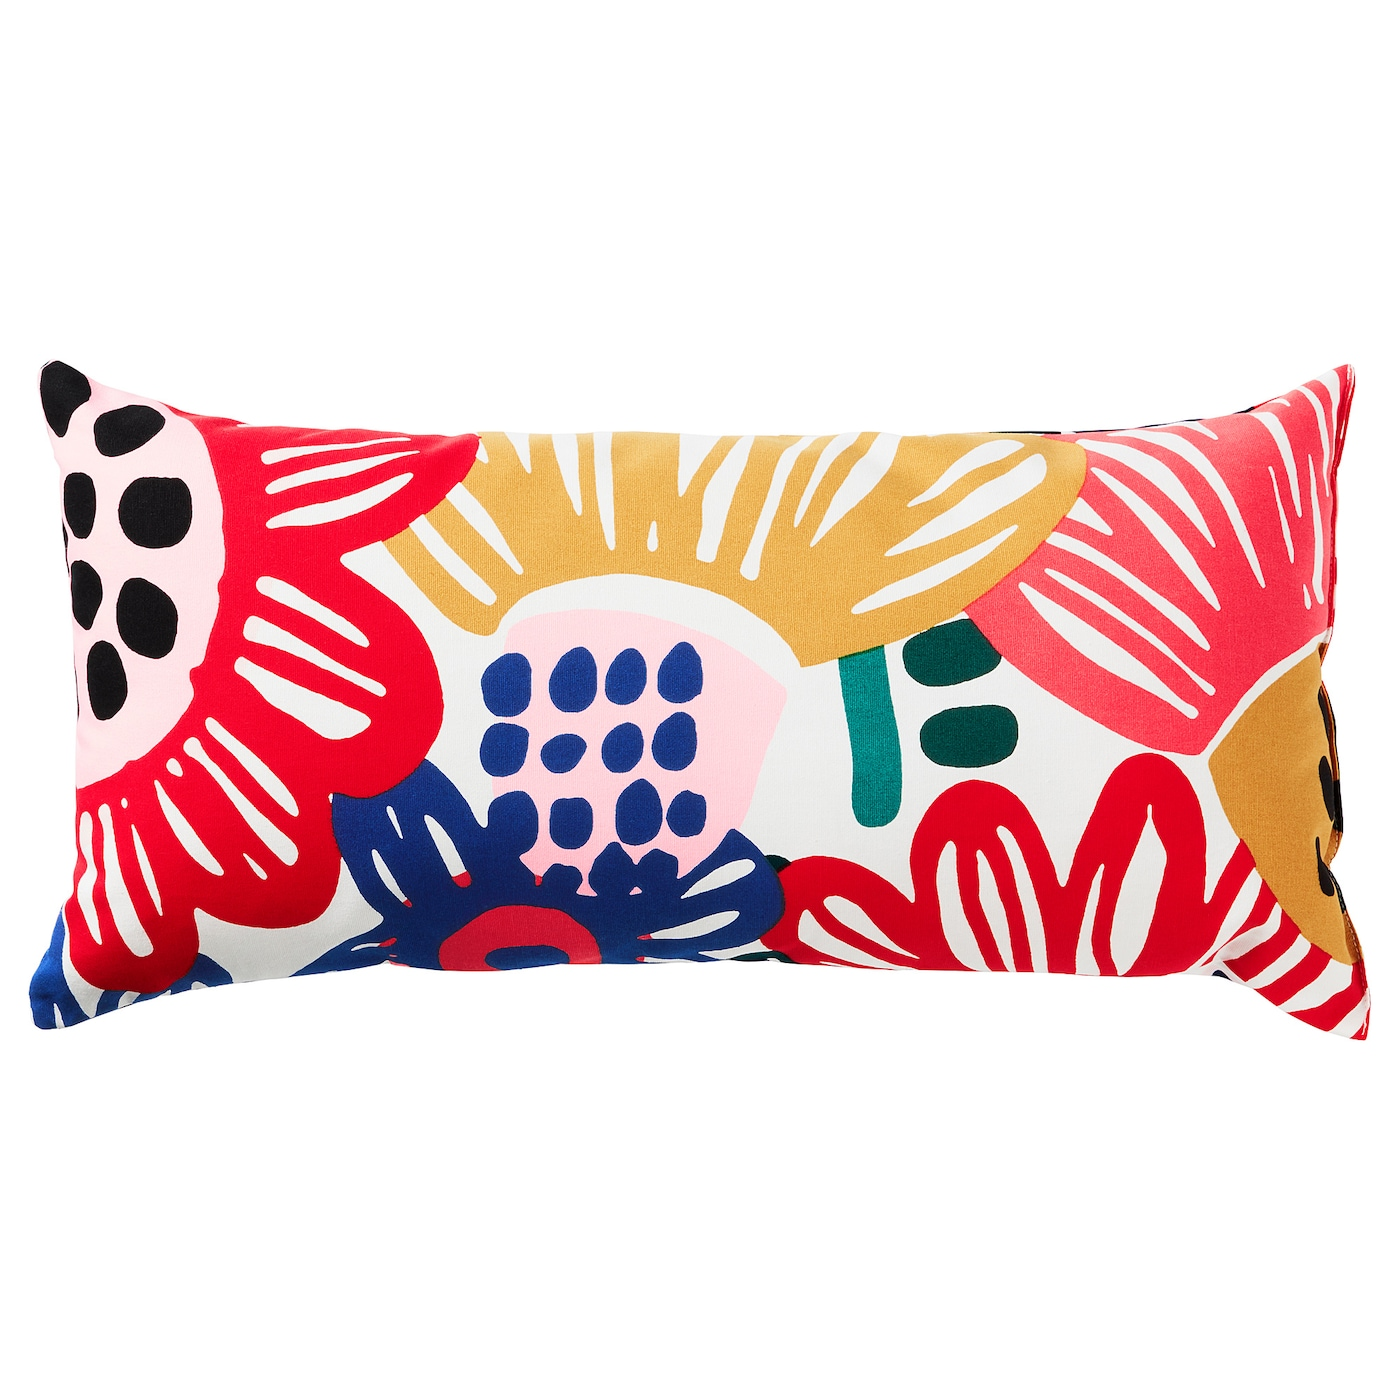 SOMMARASTER Coussin - blanc, multicolore